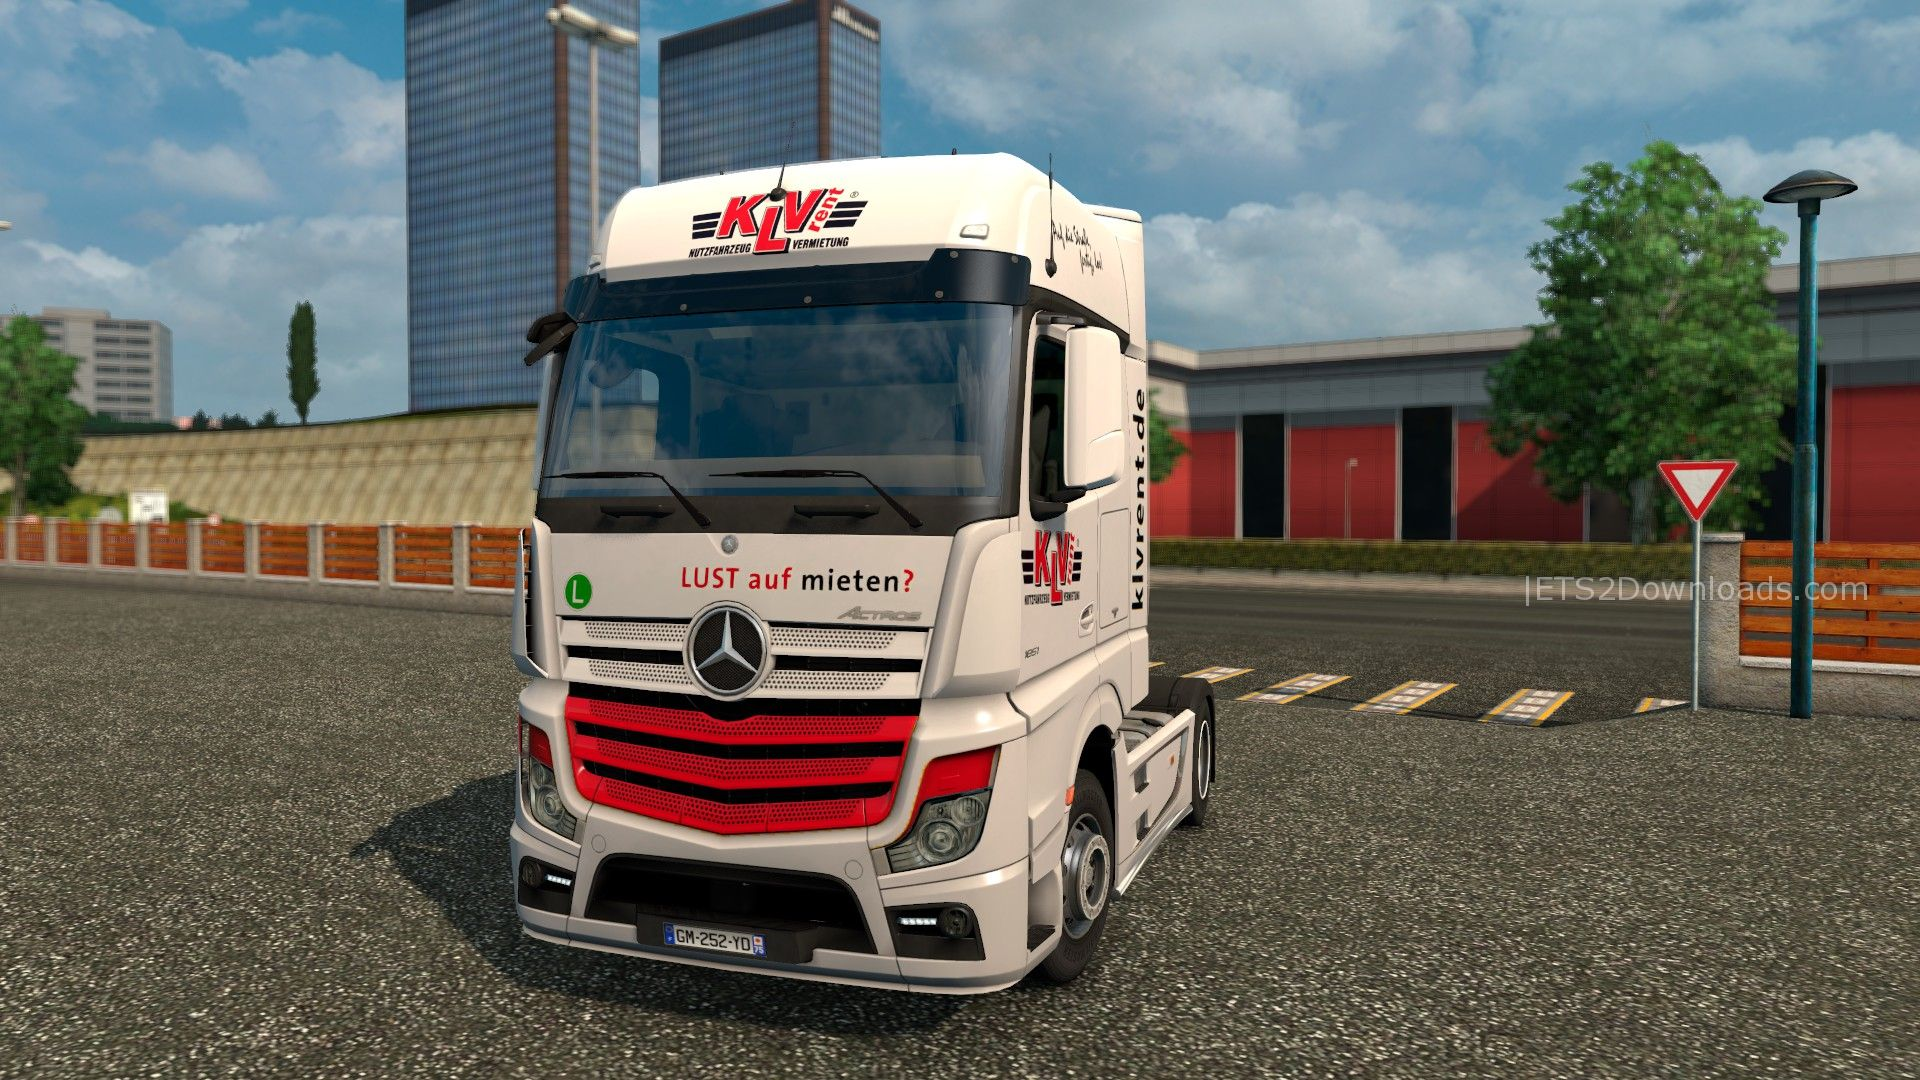 klv-rent-skin-for-mercedes-benz-actros-mpiv